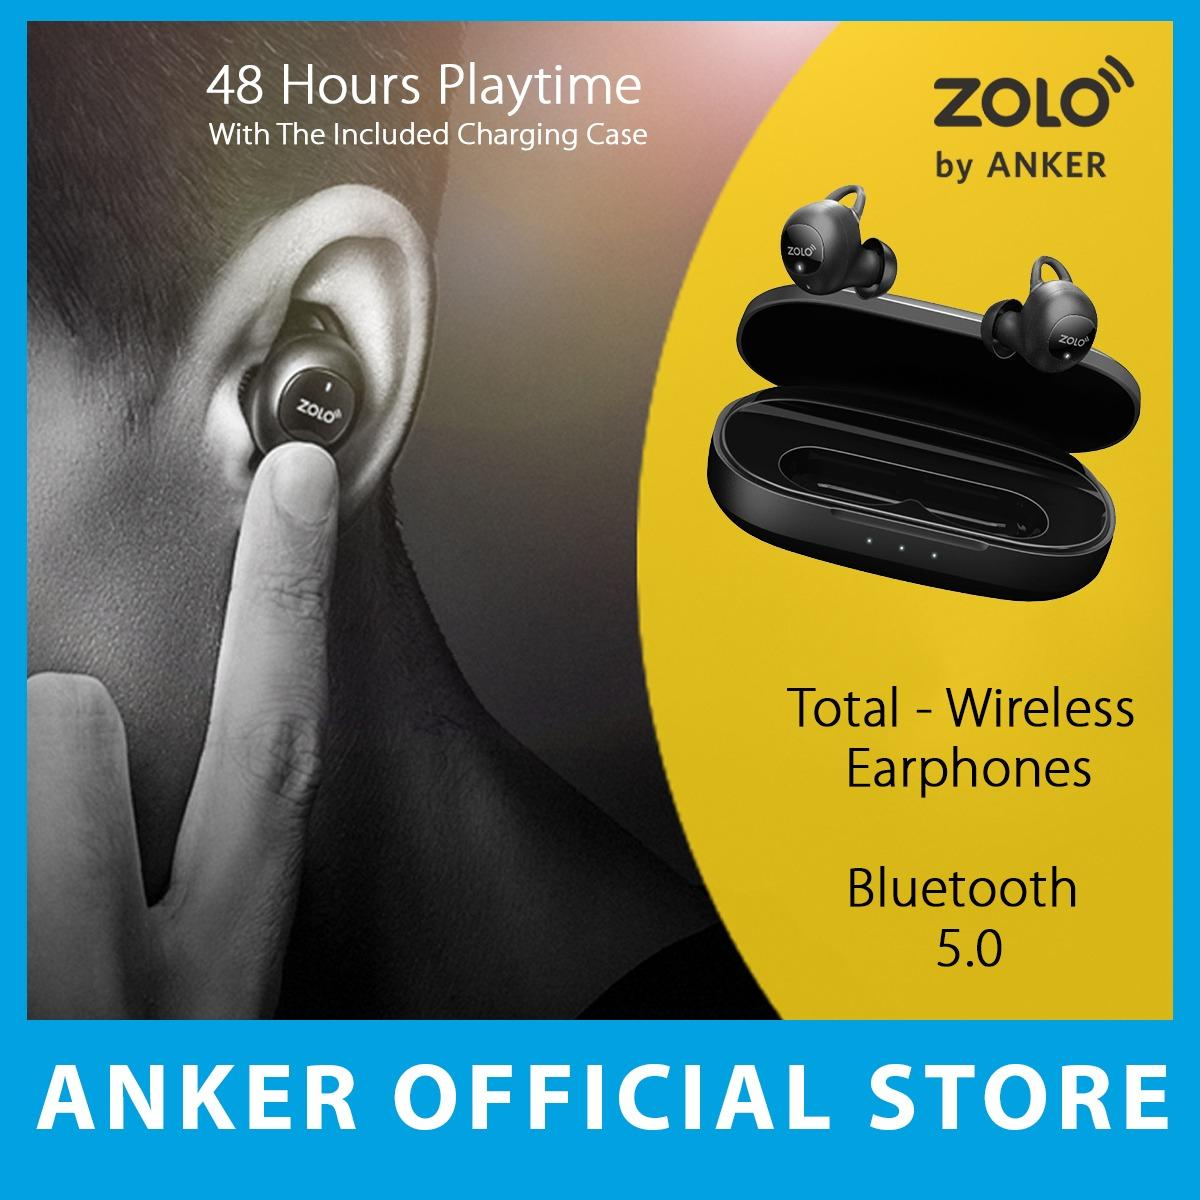 Anker Zolo Liberty Total Wireless Earbuds Price Comparison